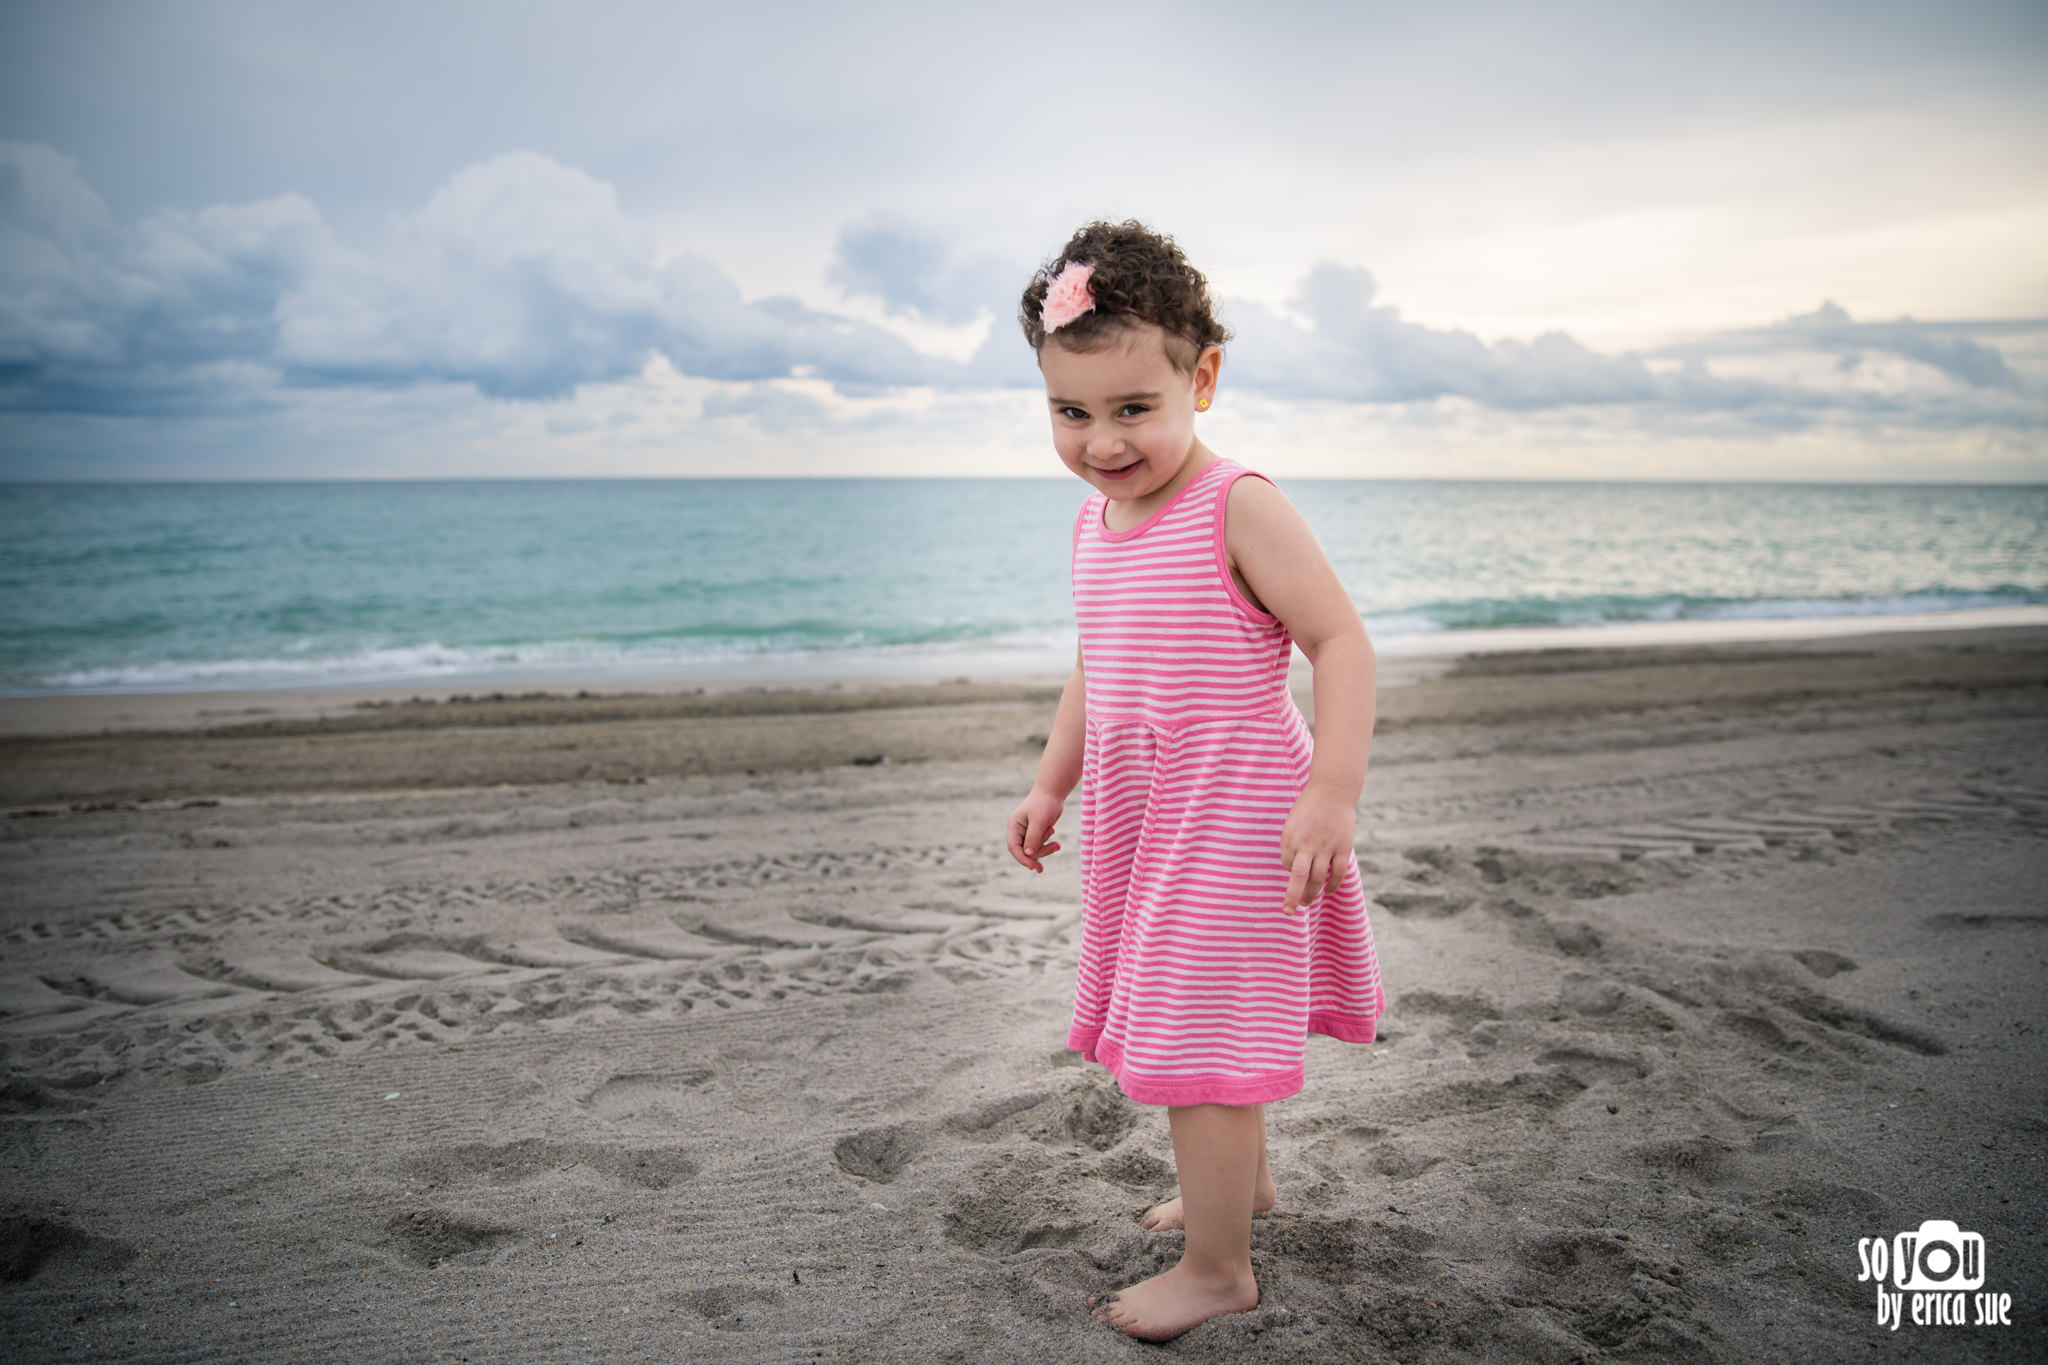 so-you-by-erica-sue-hollywood-beach-lifestyle-family-photographer-session-1065.JPG